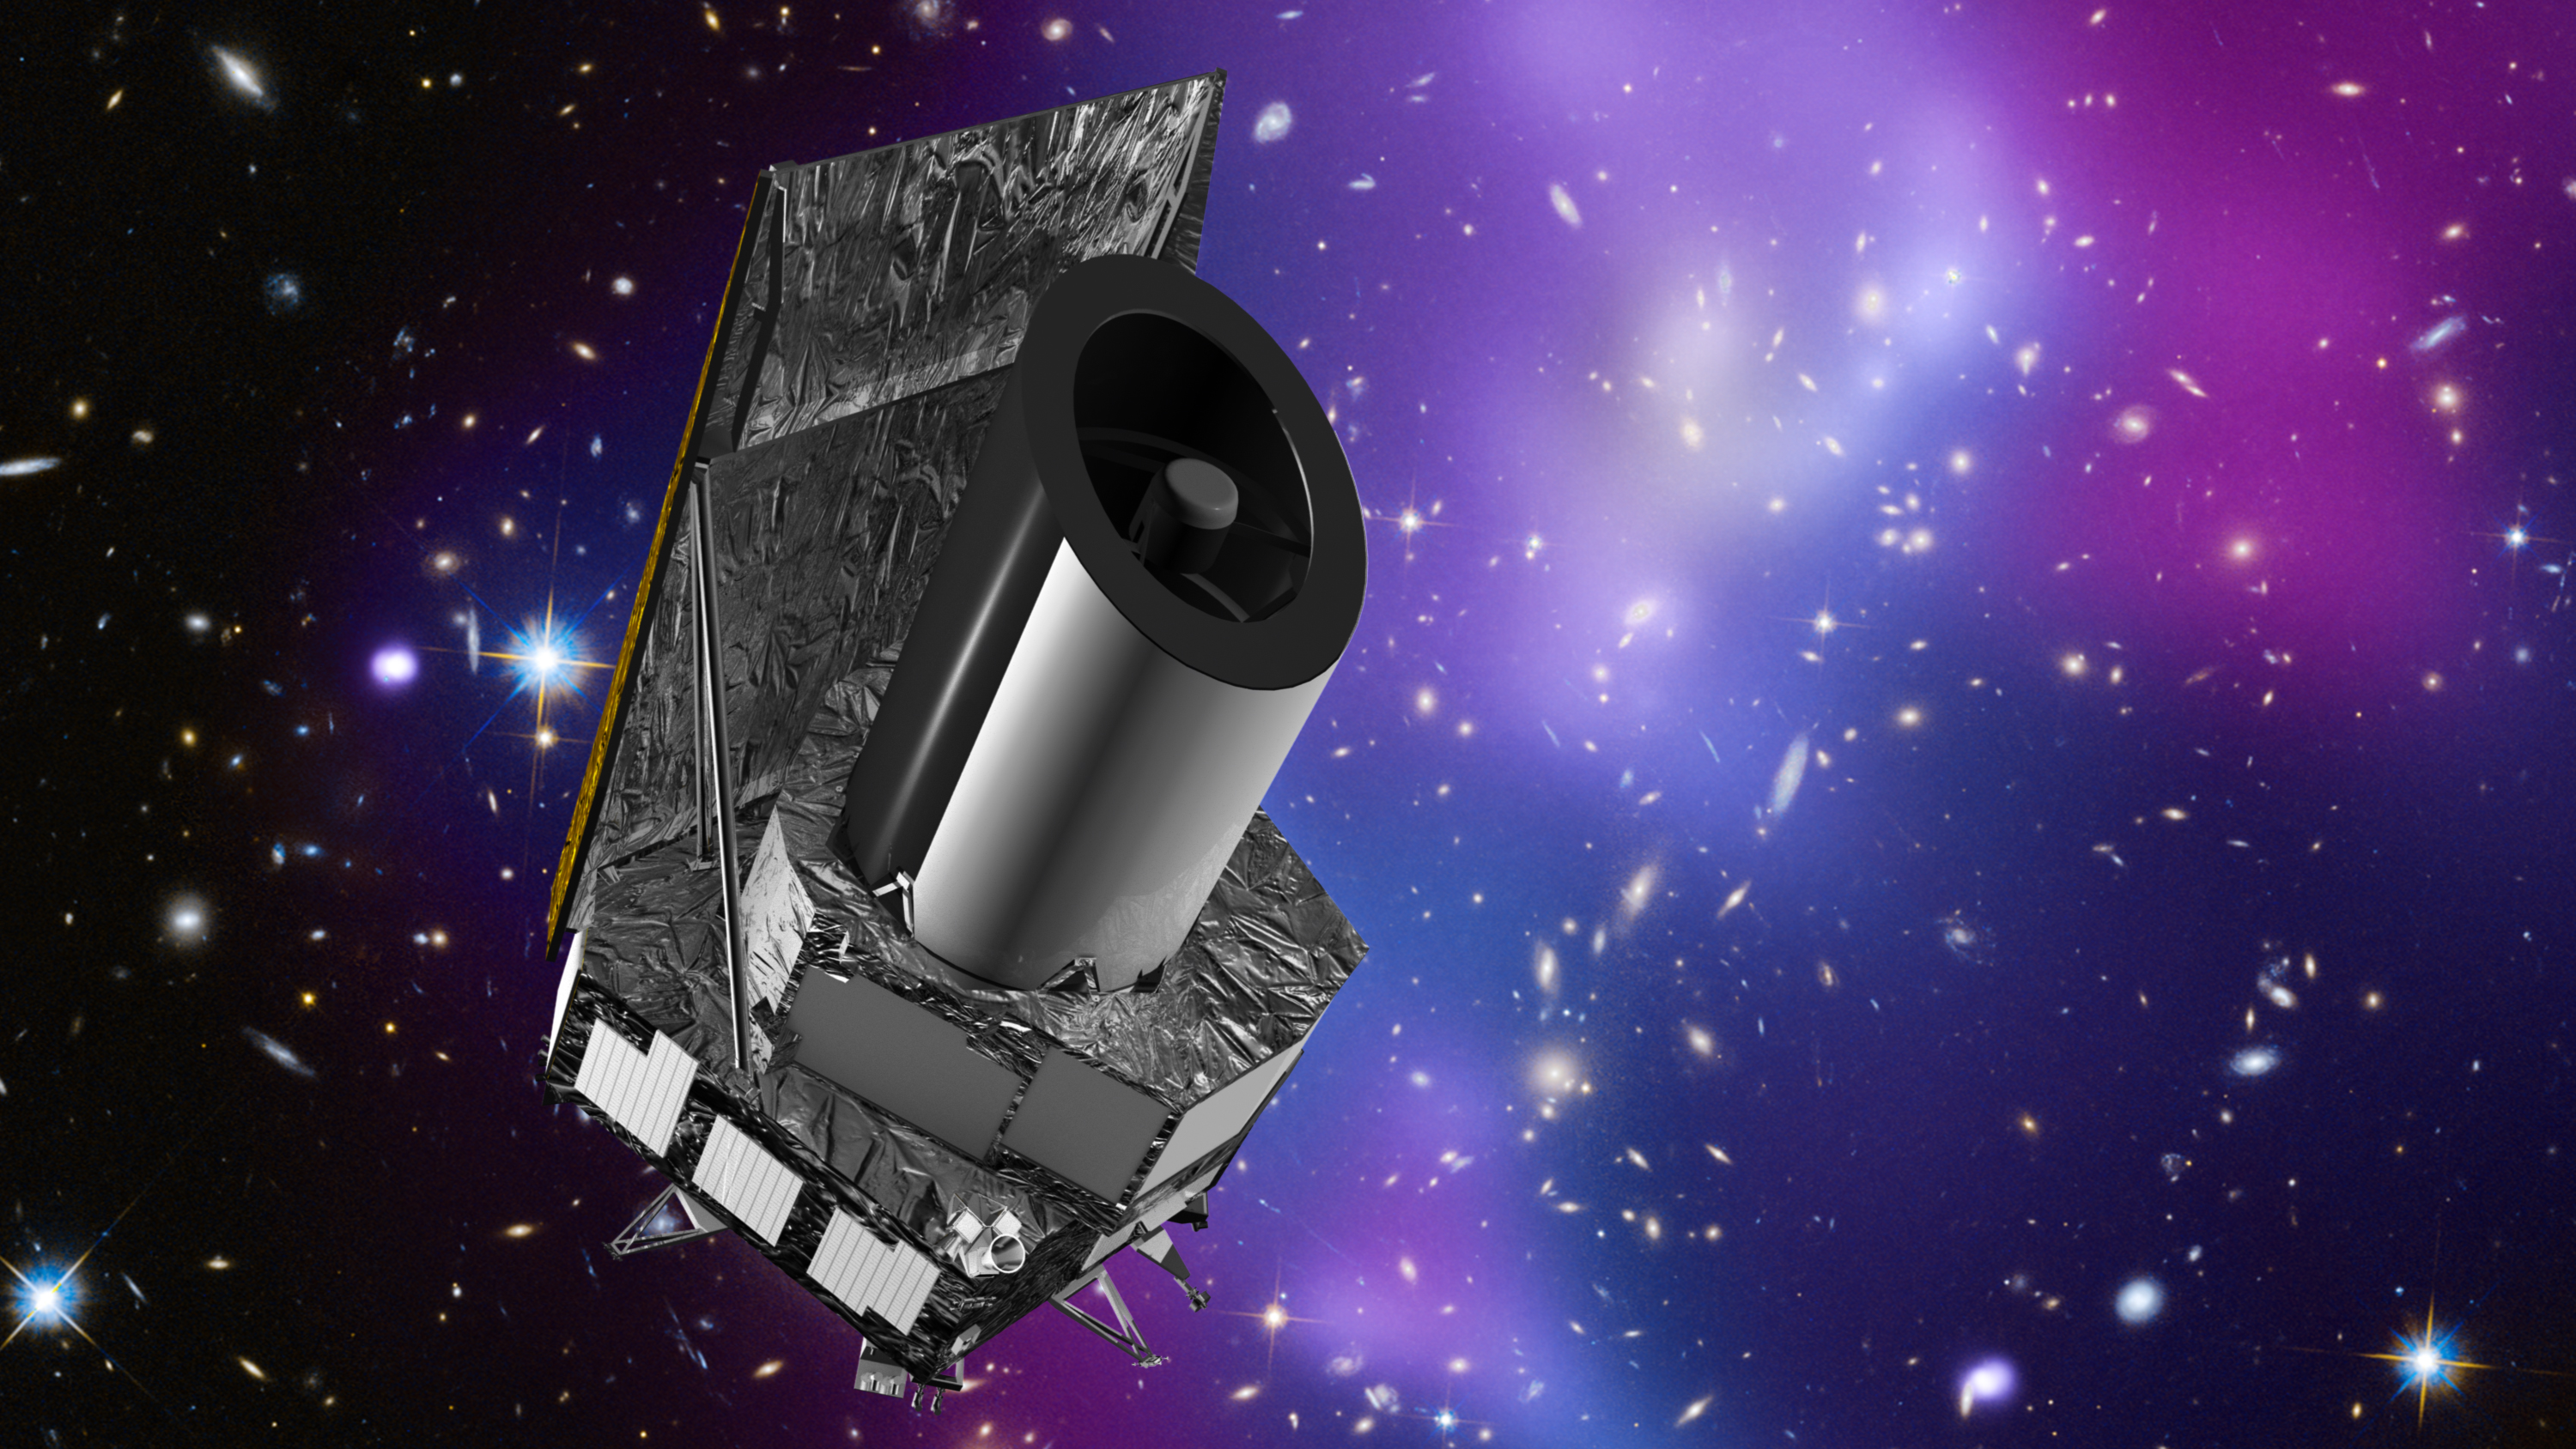 Stars Stickers For Walls Dark Universe Mission Ready To Take Shape Nasa